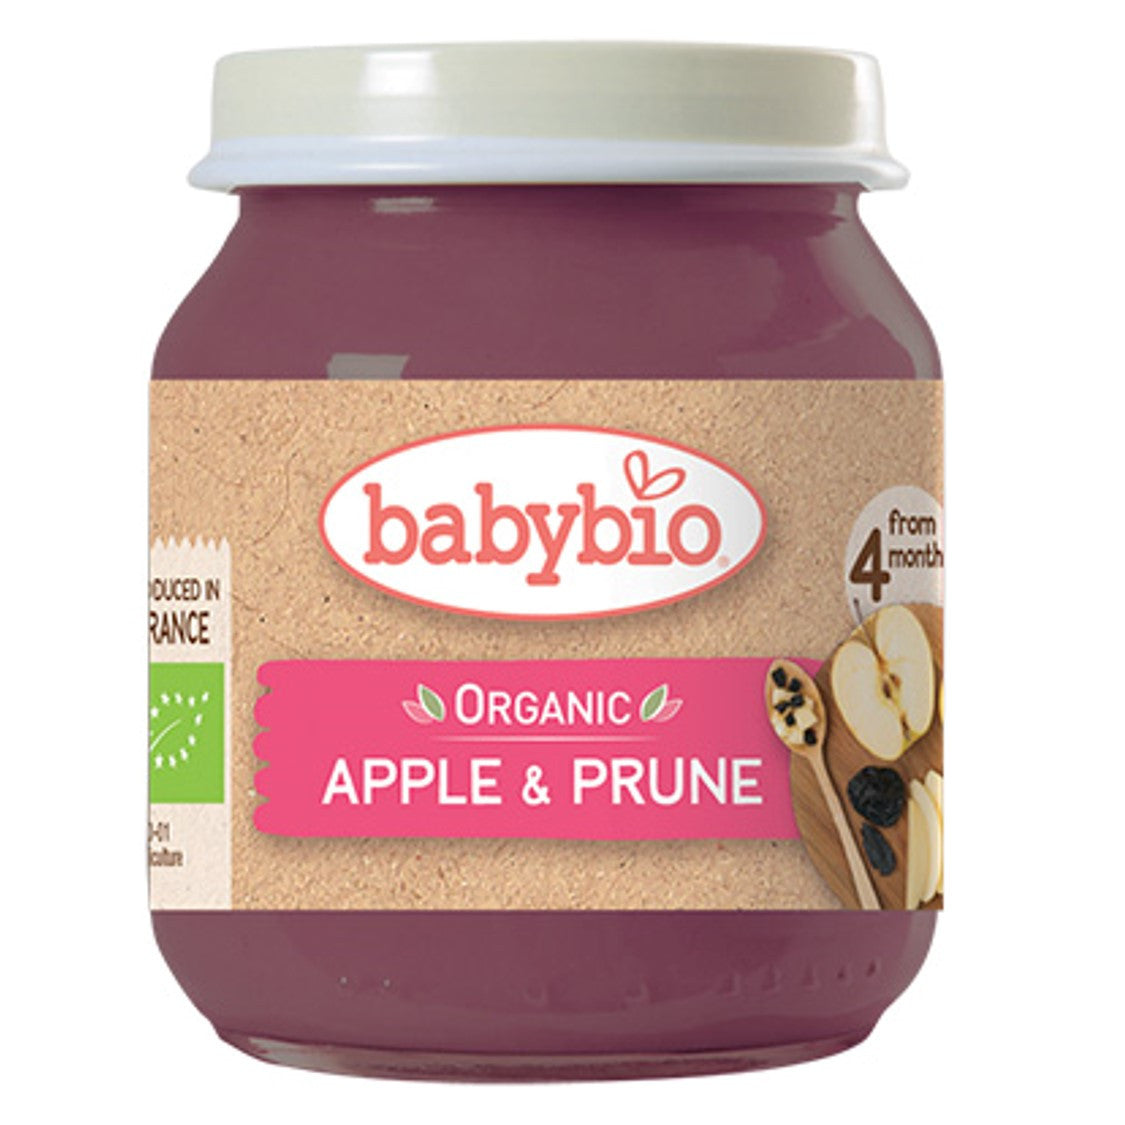 Babybio Organic Apple & Prune, 130 g.-NaturesWisdom